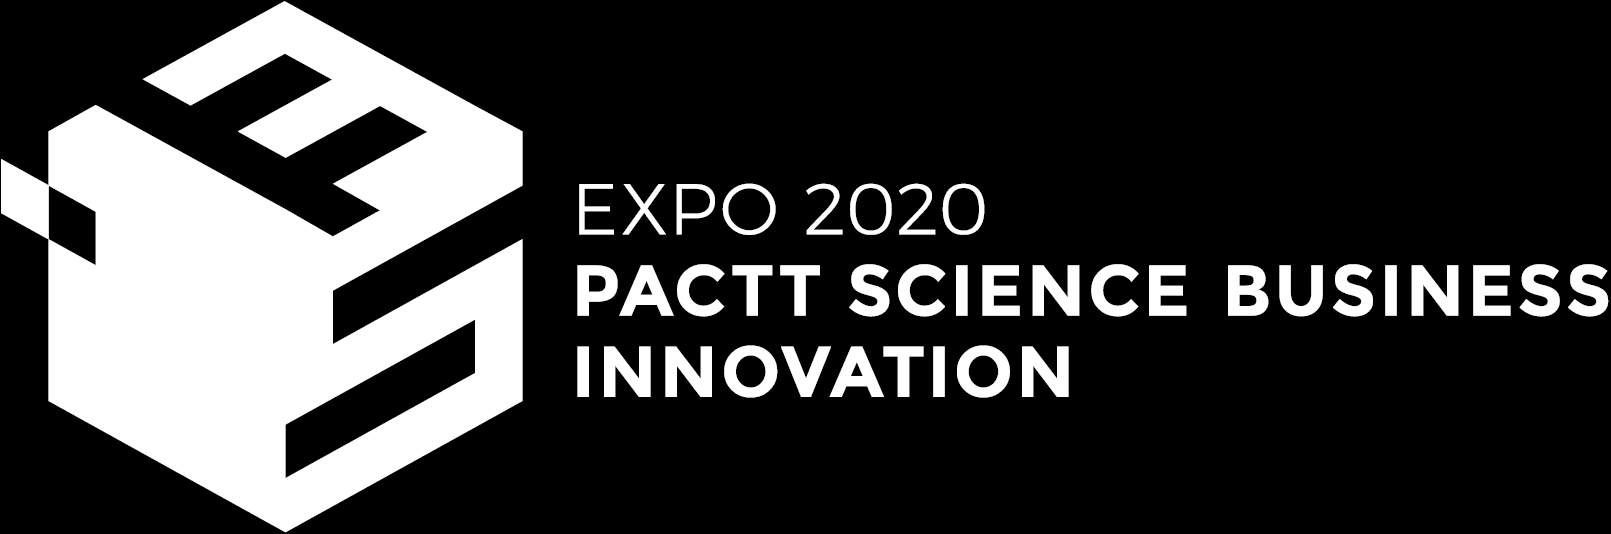 PACTT SCIENCE BUSINESS INNOVATION EXPO 2020